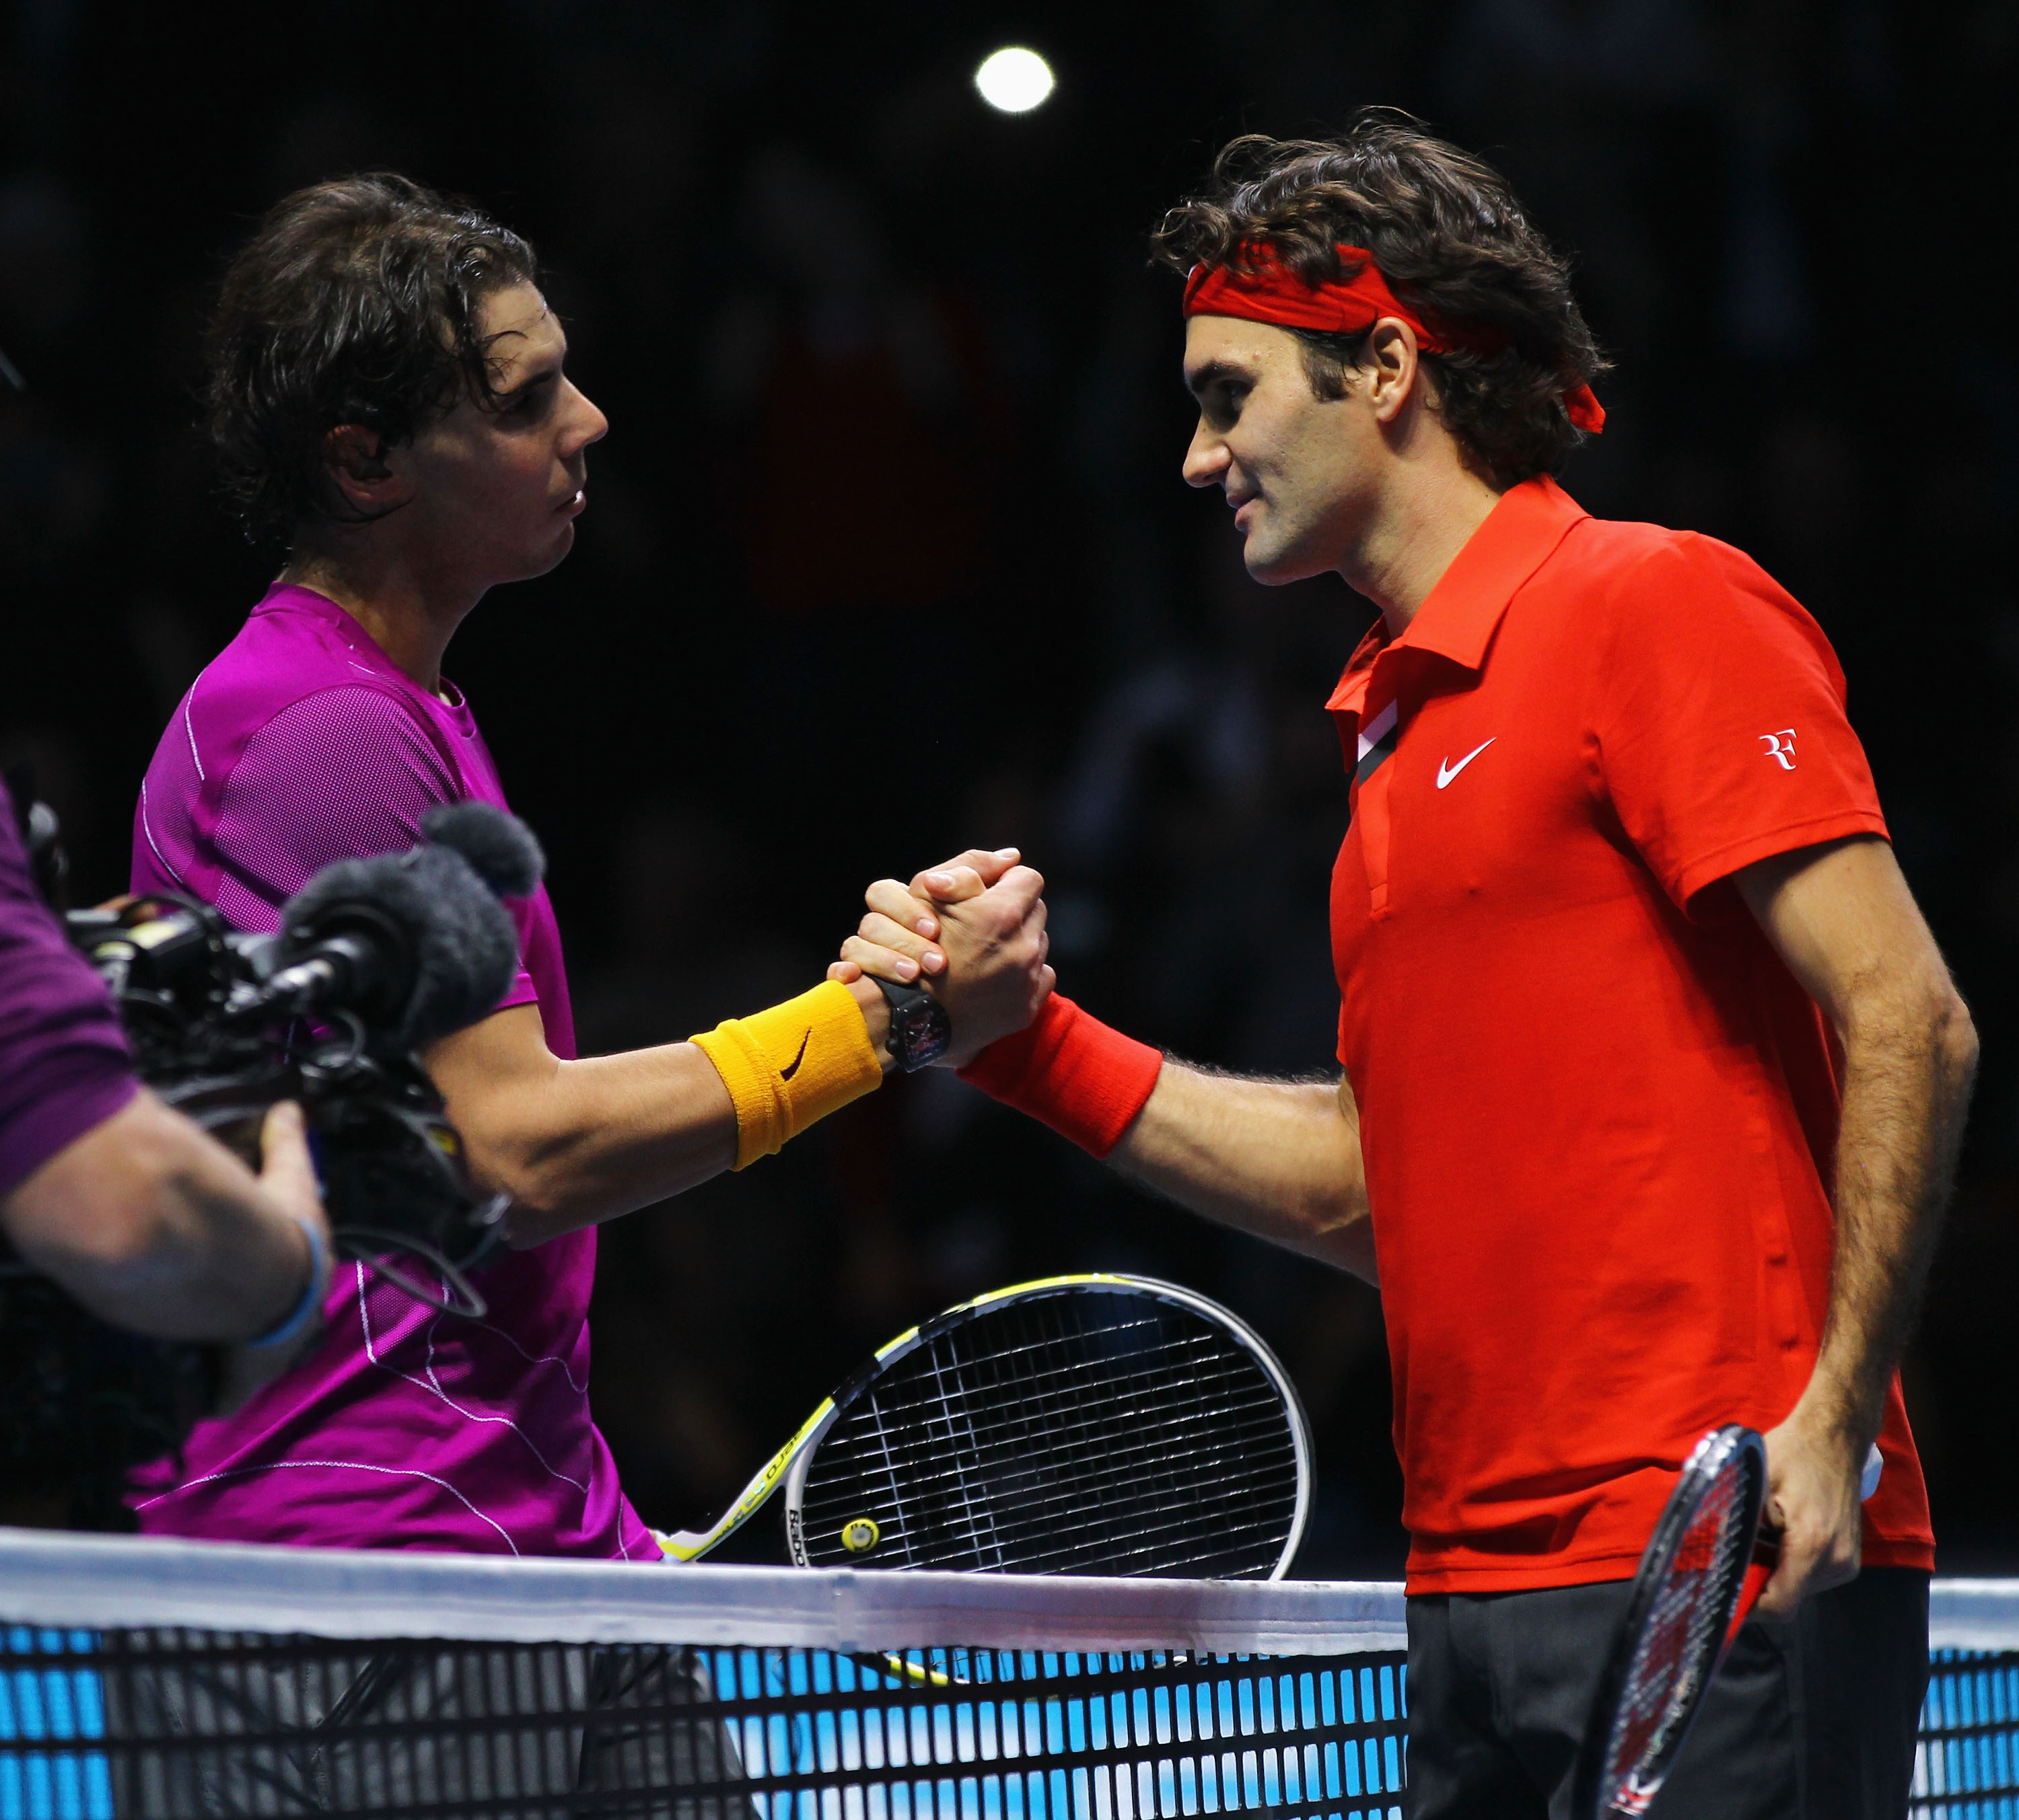 LONDON, ENGLAND - NOVEMBER 28:  Roger Federer (R) of Switzerland is congratulated by Rafael Nadal of Spain after their men's final match during the ATP World Tour Finals at O2 Arena on November 28, 2010 in London, England.  (Photo by Matthew Lewis/Getty I